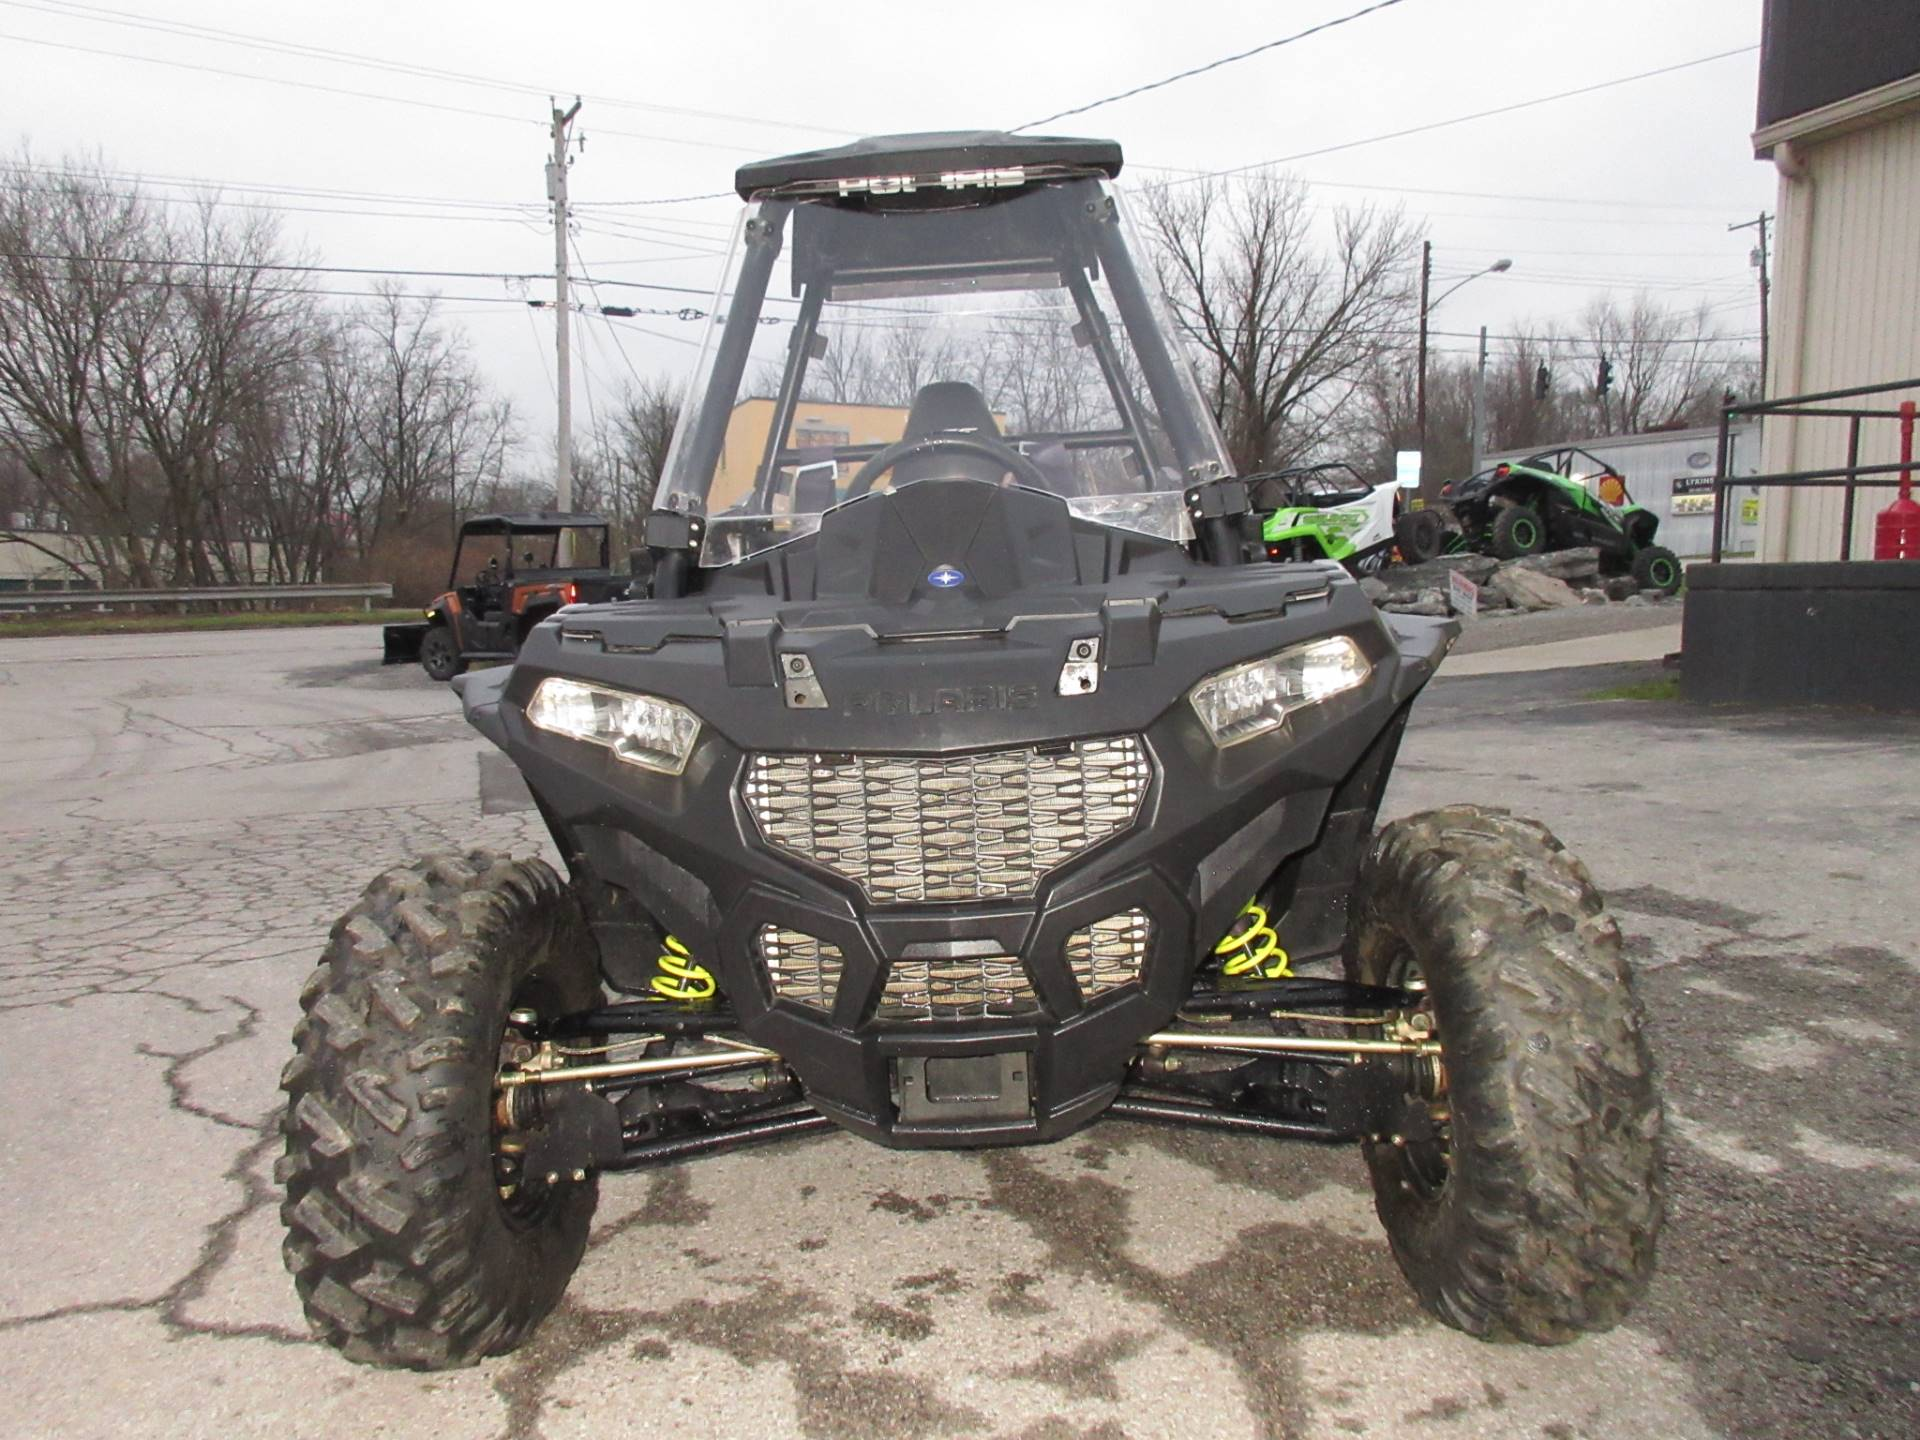 2017 Polaris Ace 900 XC in Georgetown, Kentucky - Photo 3